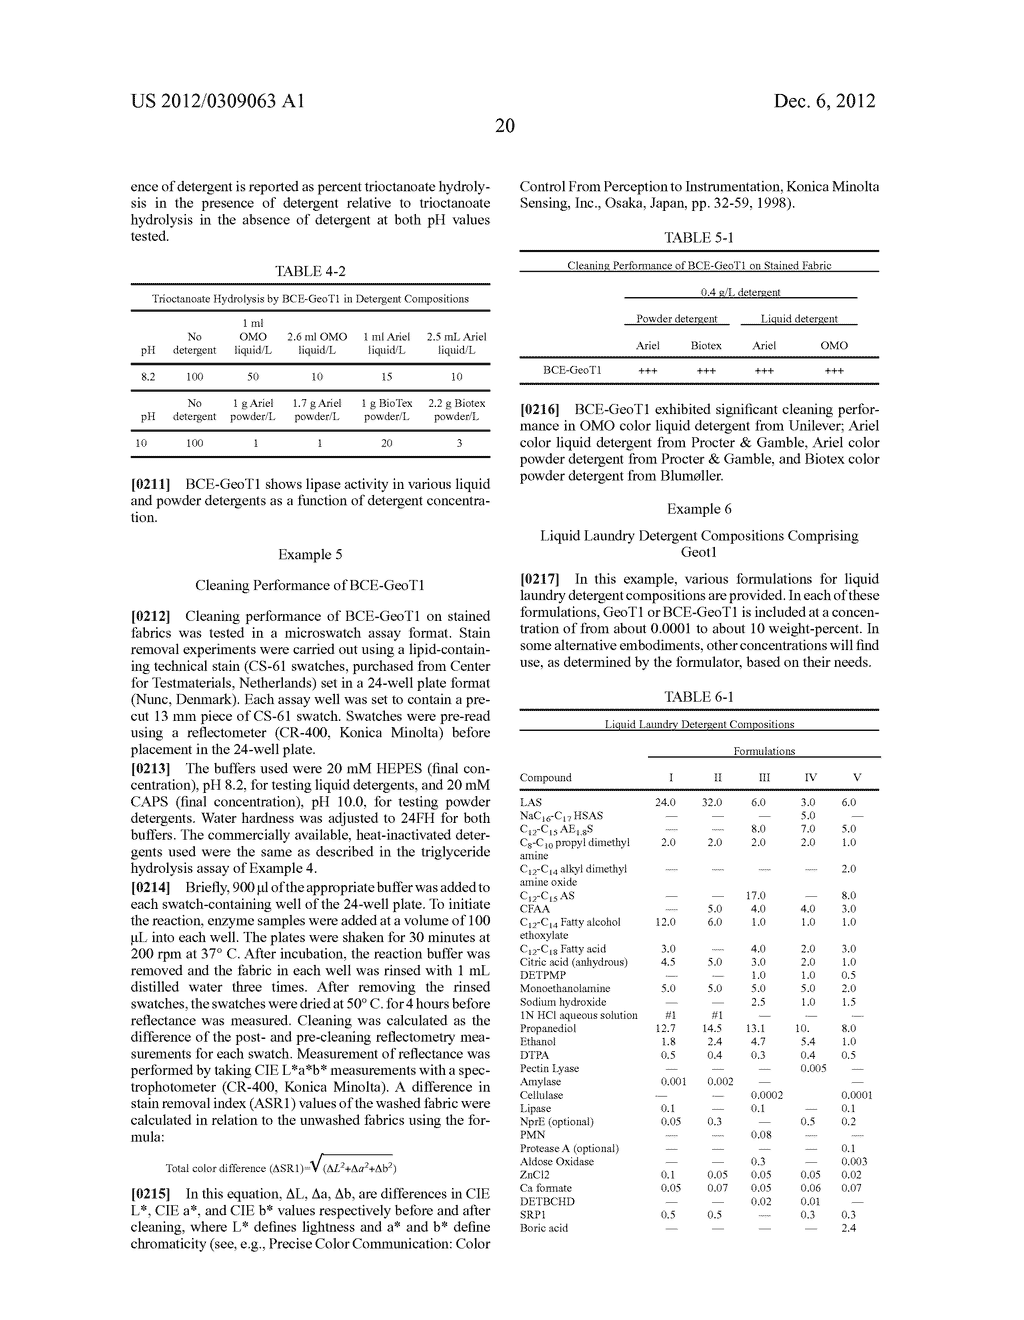 DETERGENT COMPOSITIONS CONTAINING GEOBACILLUS STEAROTHERMOPHILUS LIPASE     AND METHODS OF USE THEREOF - diagram, schematic, and image 21